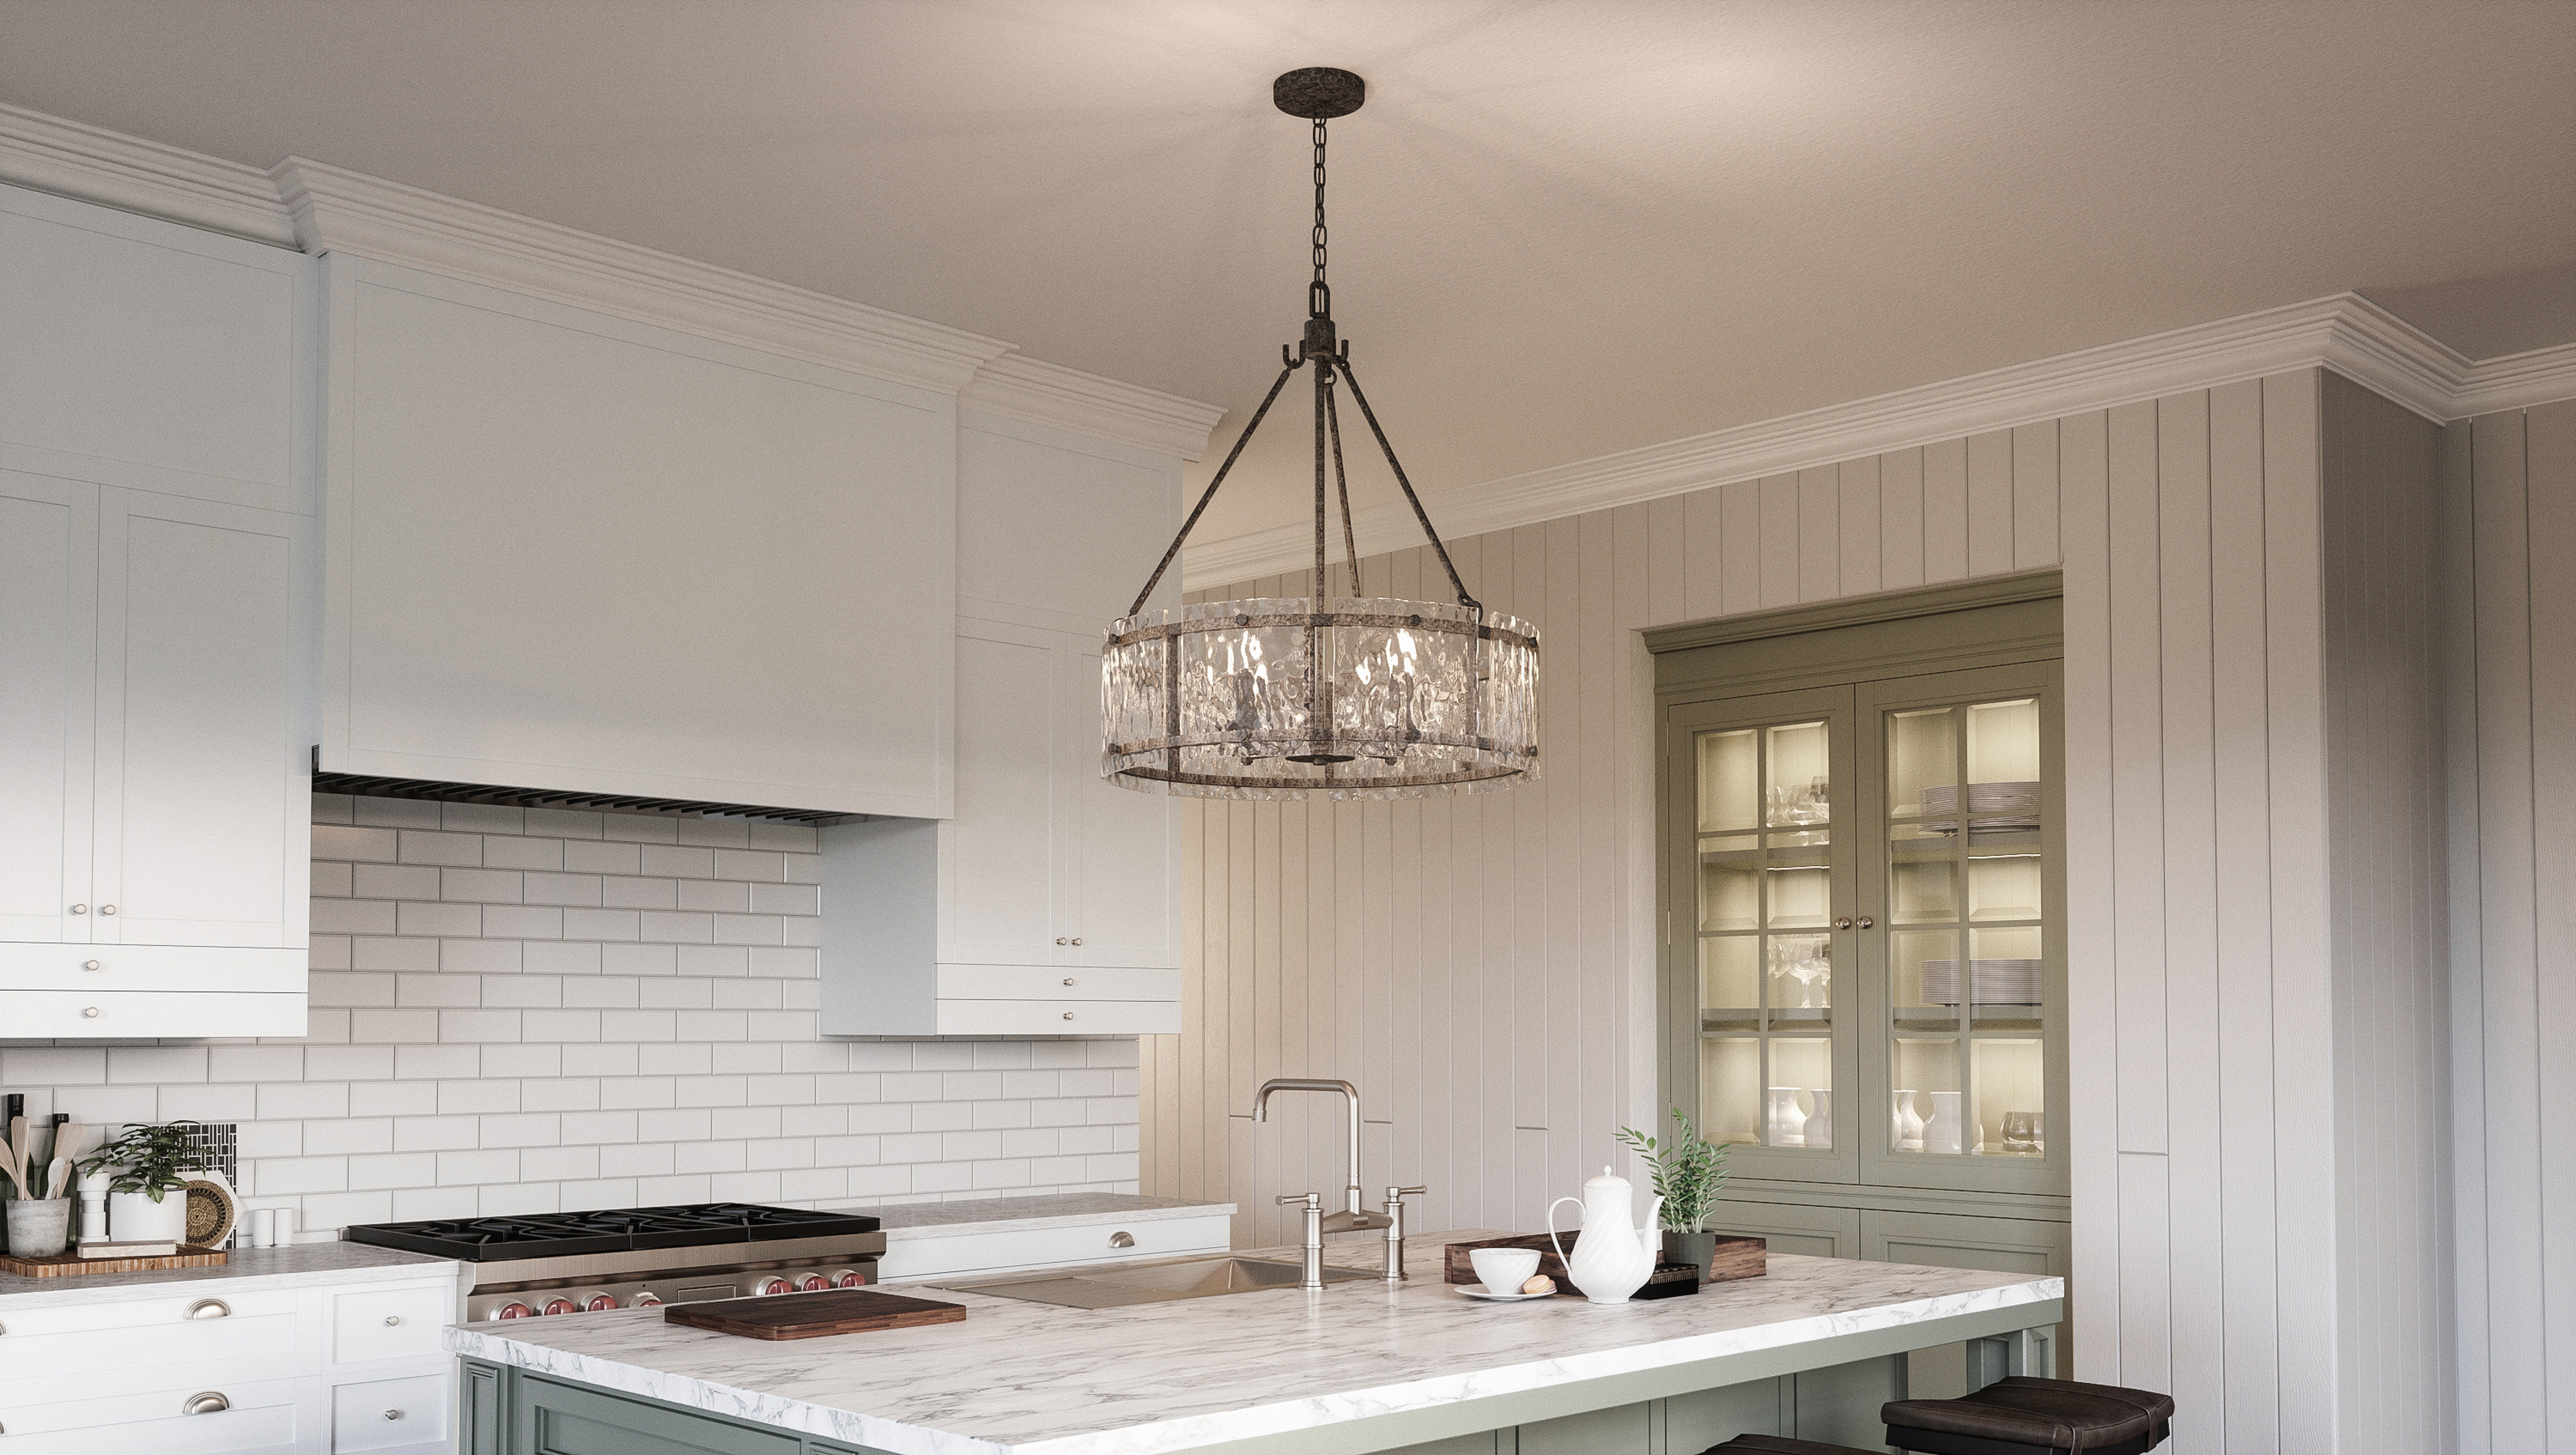 Hasse 5 Light Drum Chandelier For Best And Newest Aadhya 5 Light Drum Chandeliers (View 13 of 20)